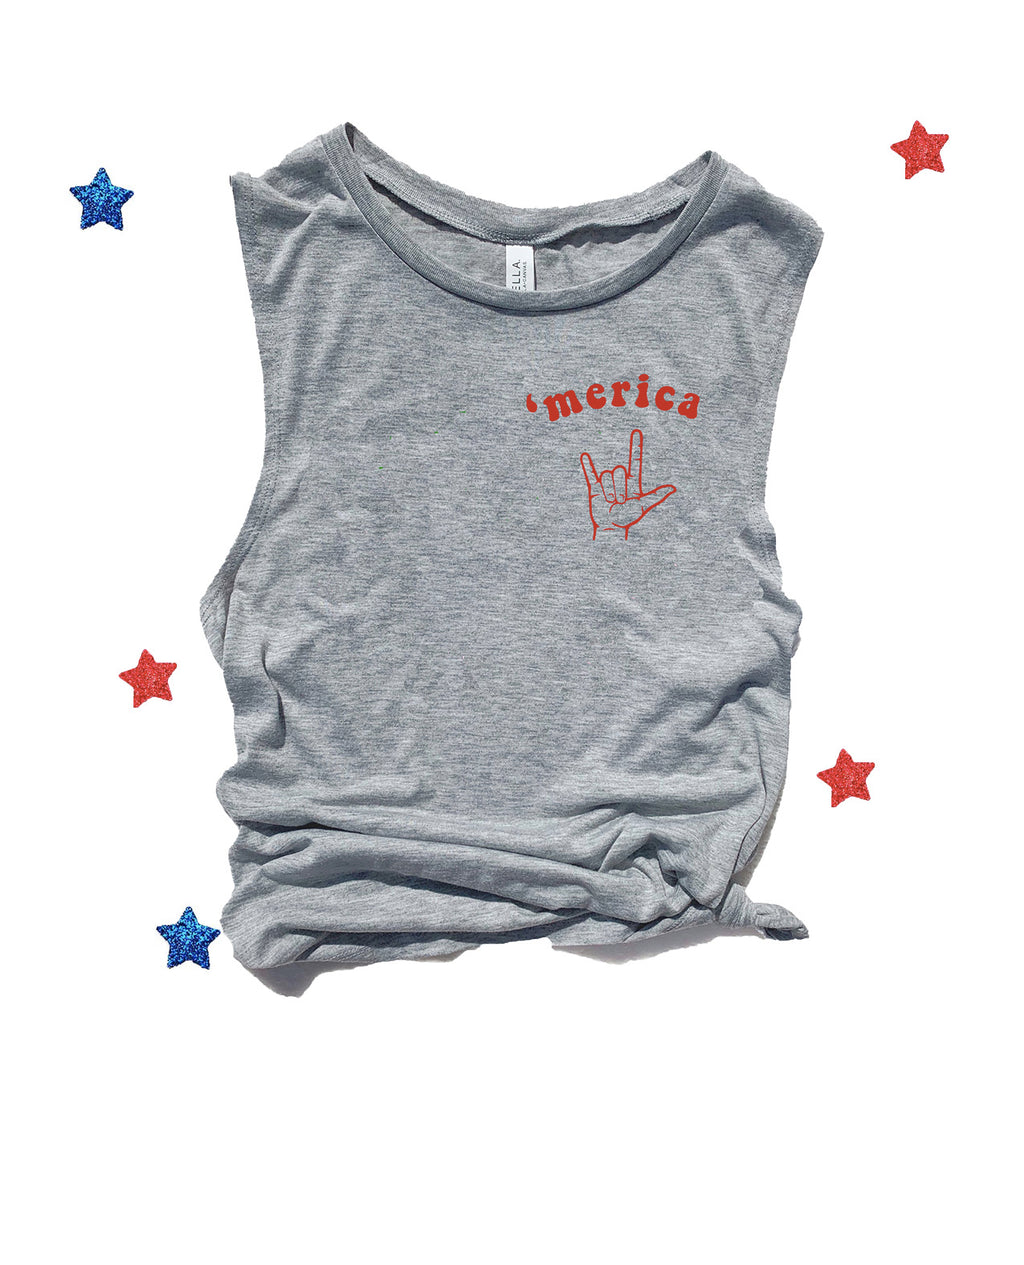 Our super cute 4th of July tank top is the perfect patriotic shirt for all your 4th of July festivities! Support your love for America with this cute 4th of July tank!